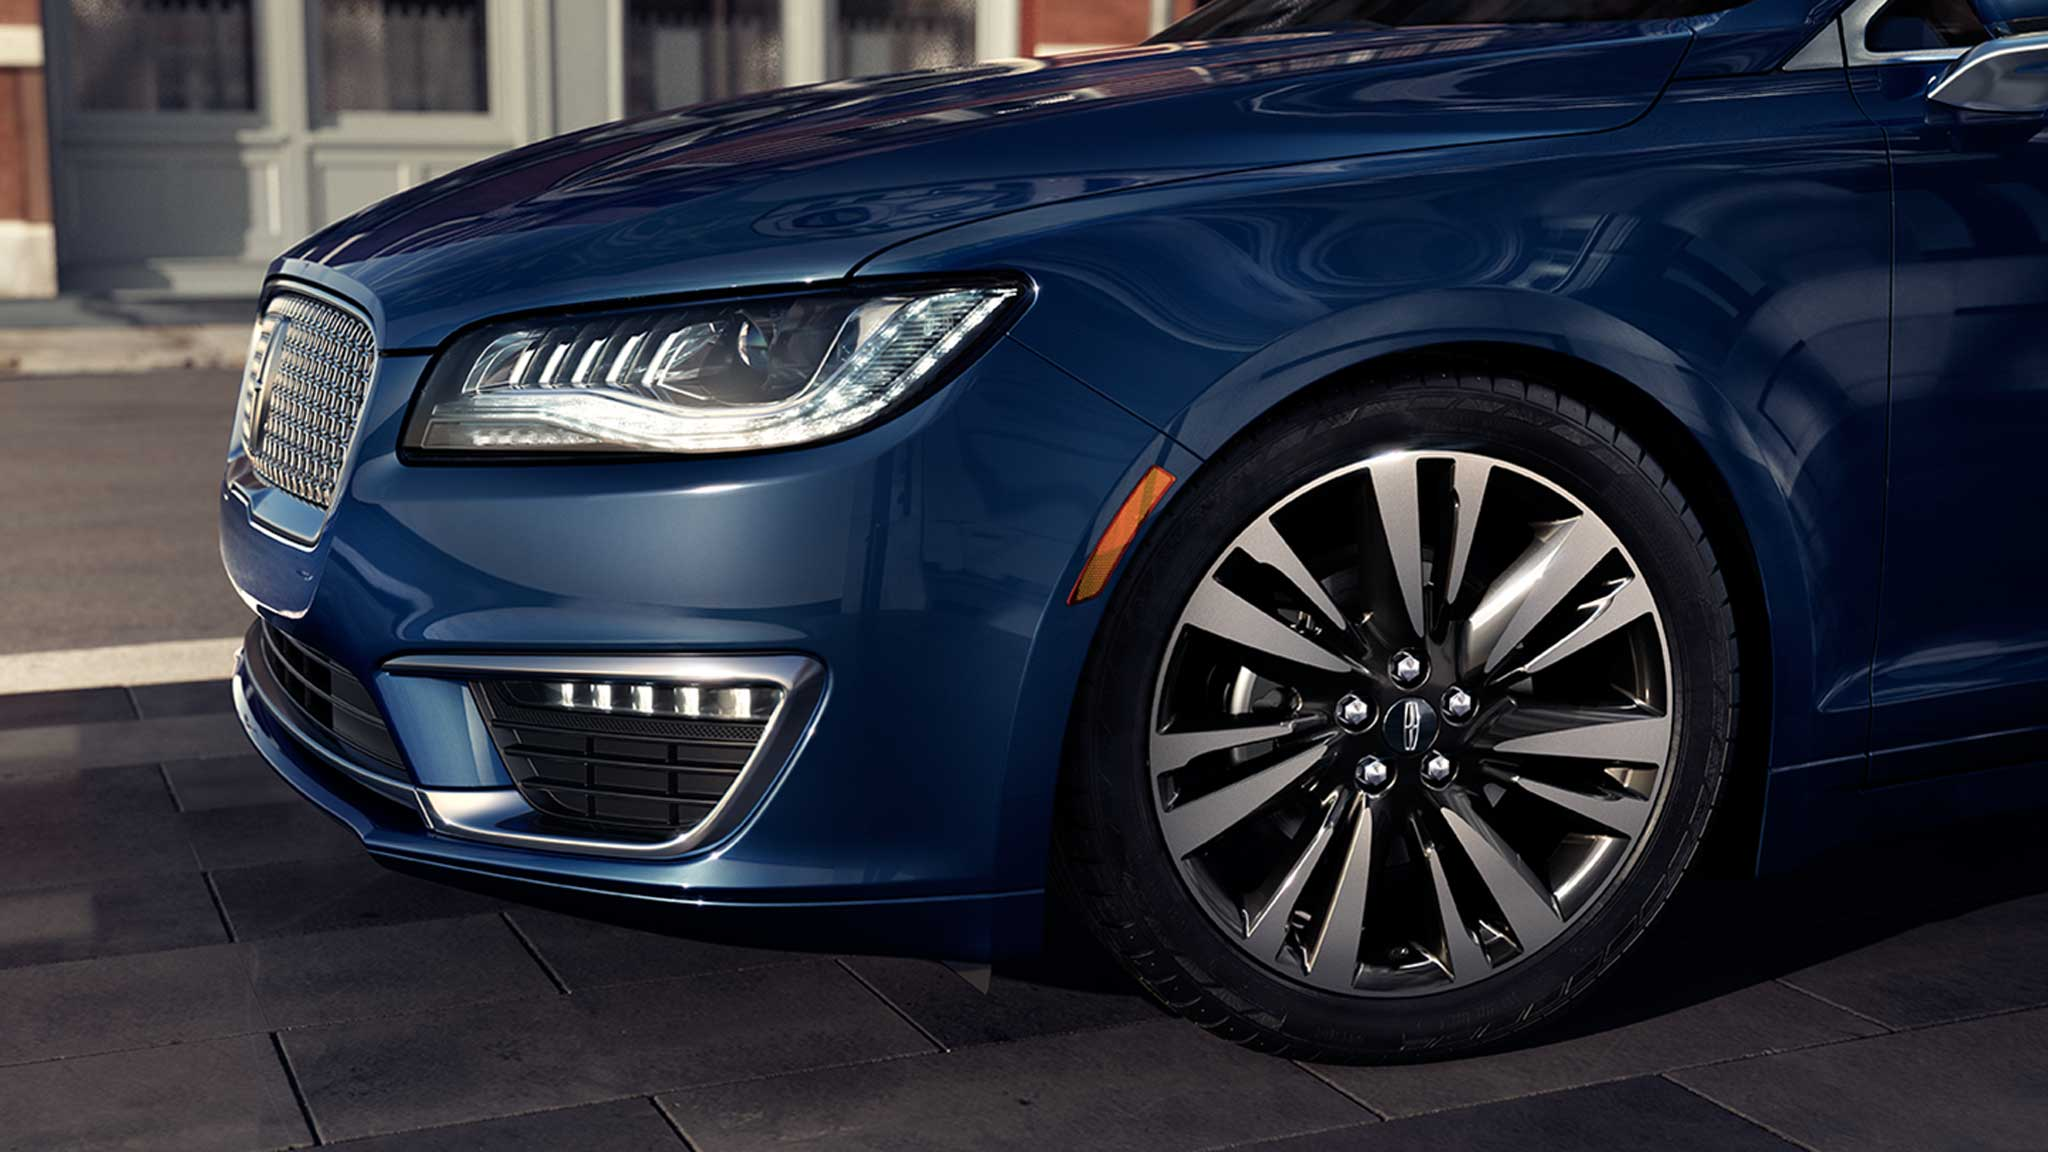 2017 Lincoln MKZ Front Exterior Blue